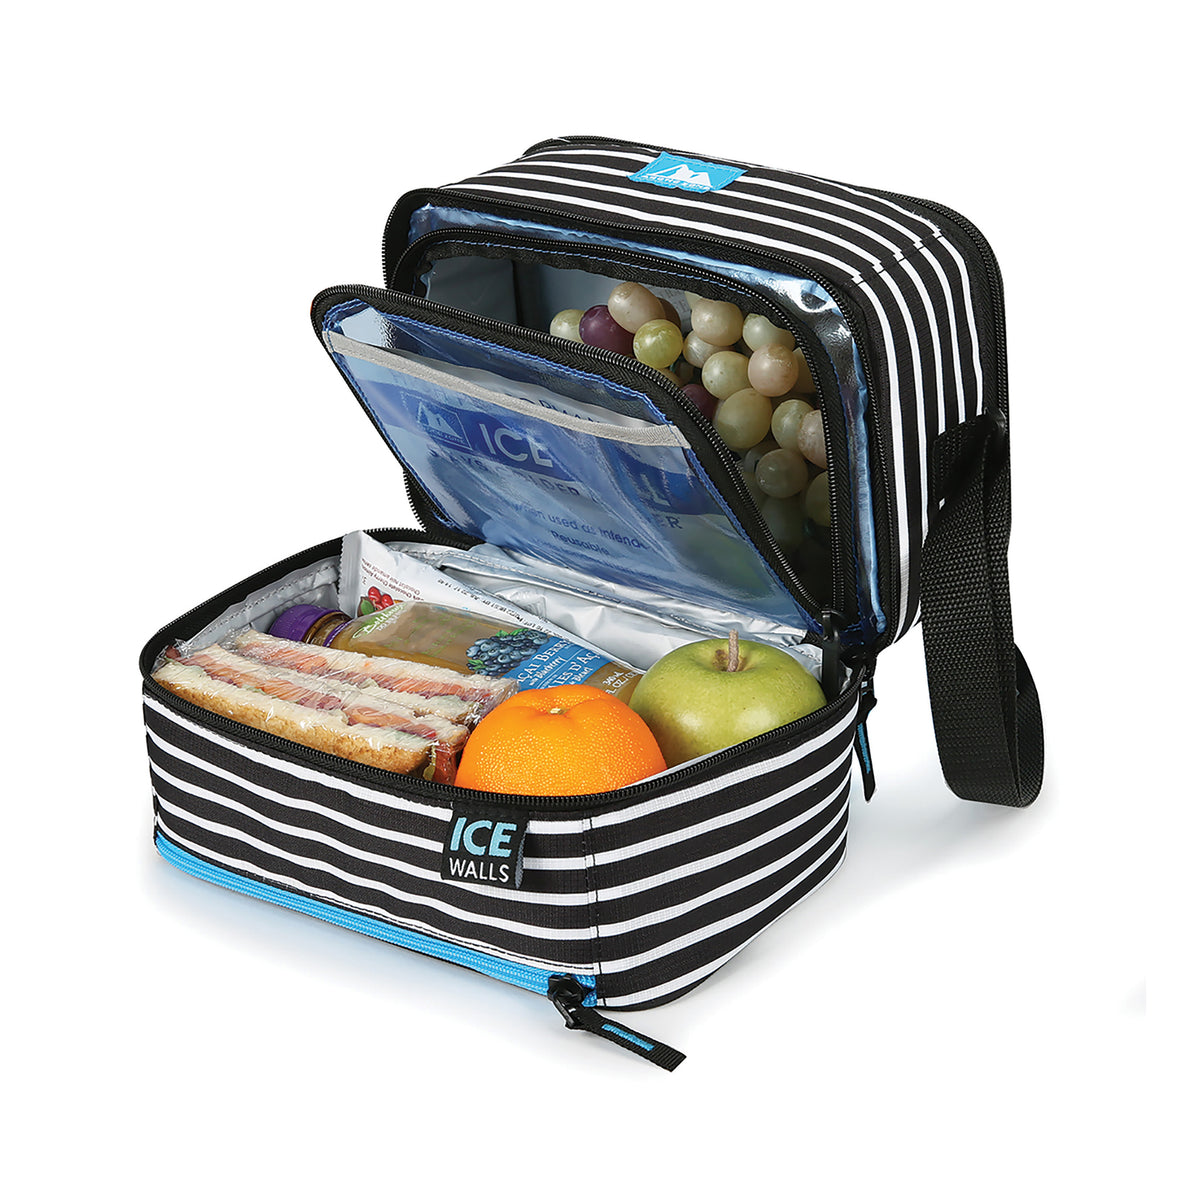 Arctic Zone® Ice Walls® Dual Compartment Lunch Pack - Classic Stripes - Open, propped